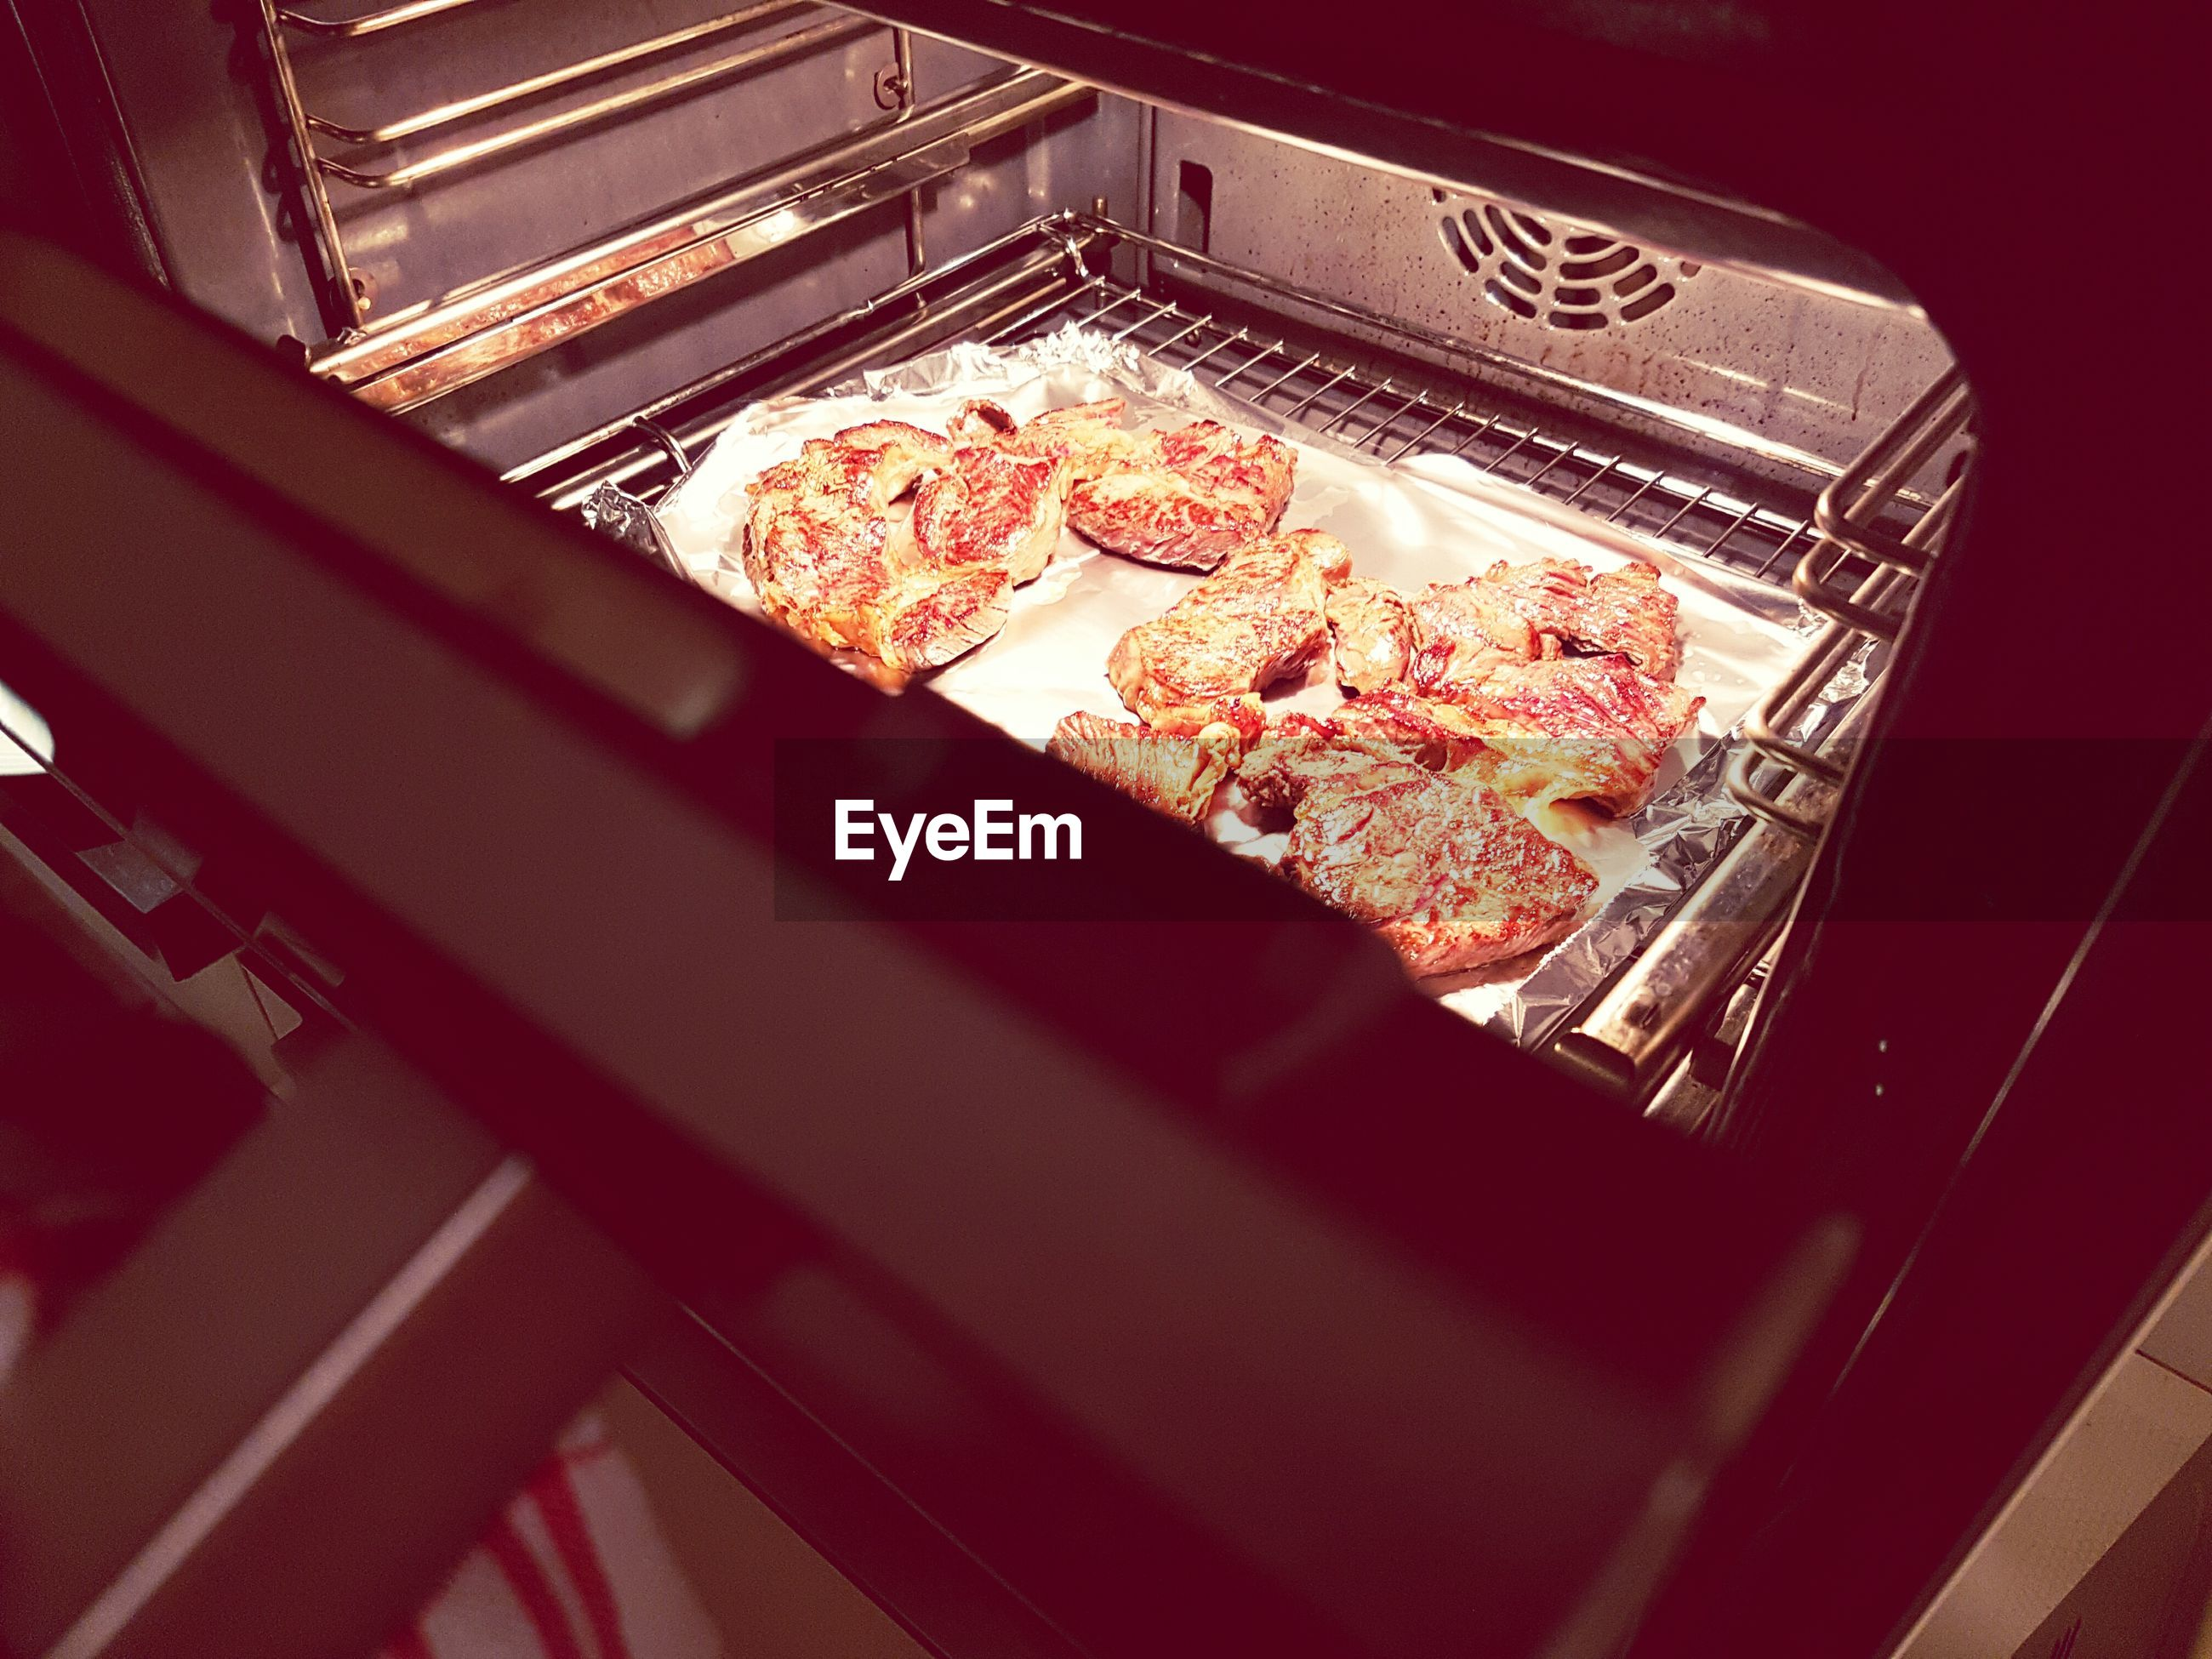 High angle view of food in microwave oven